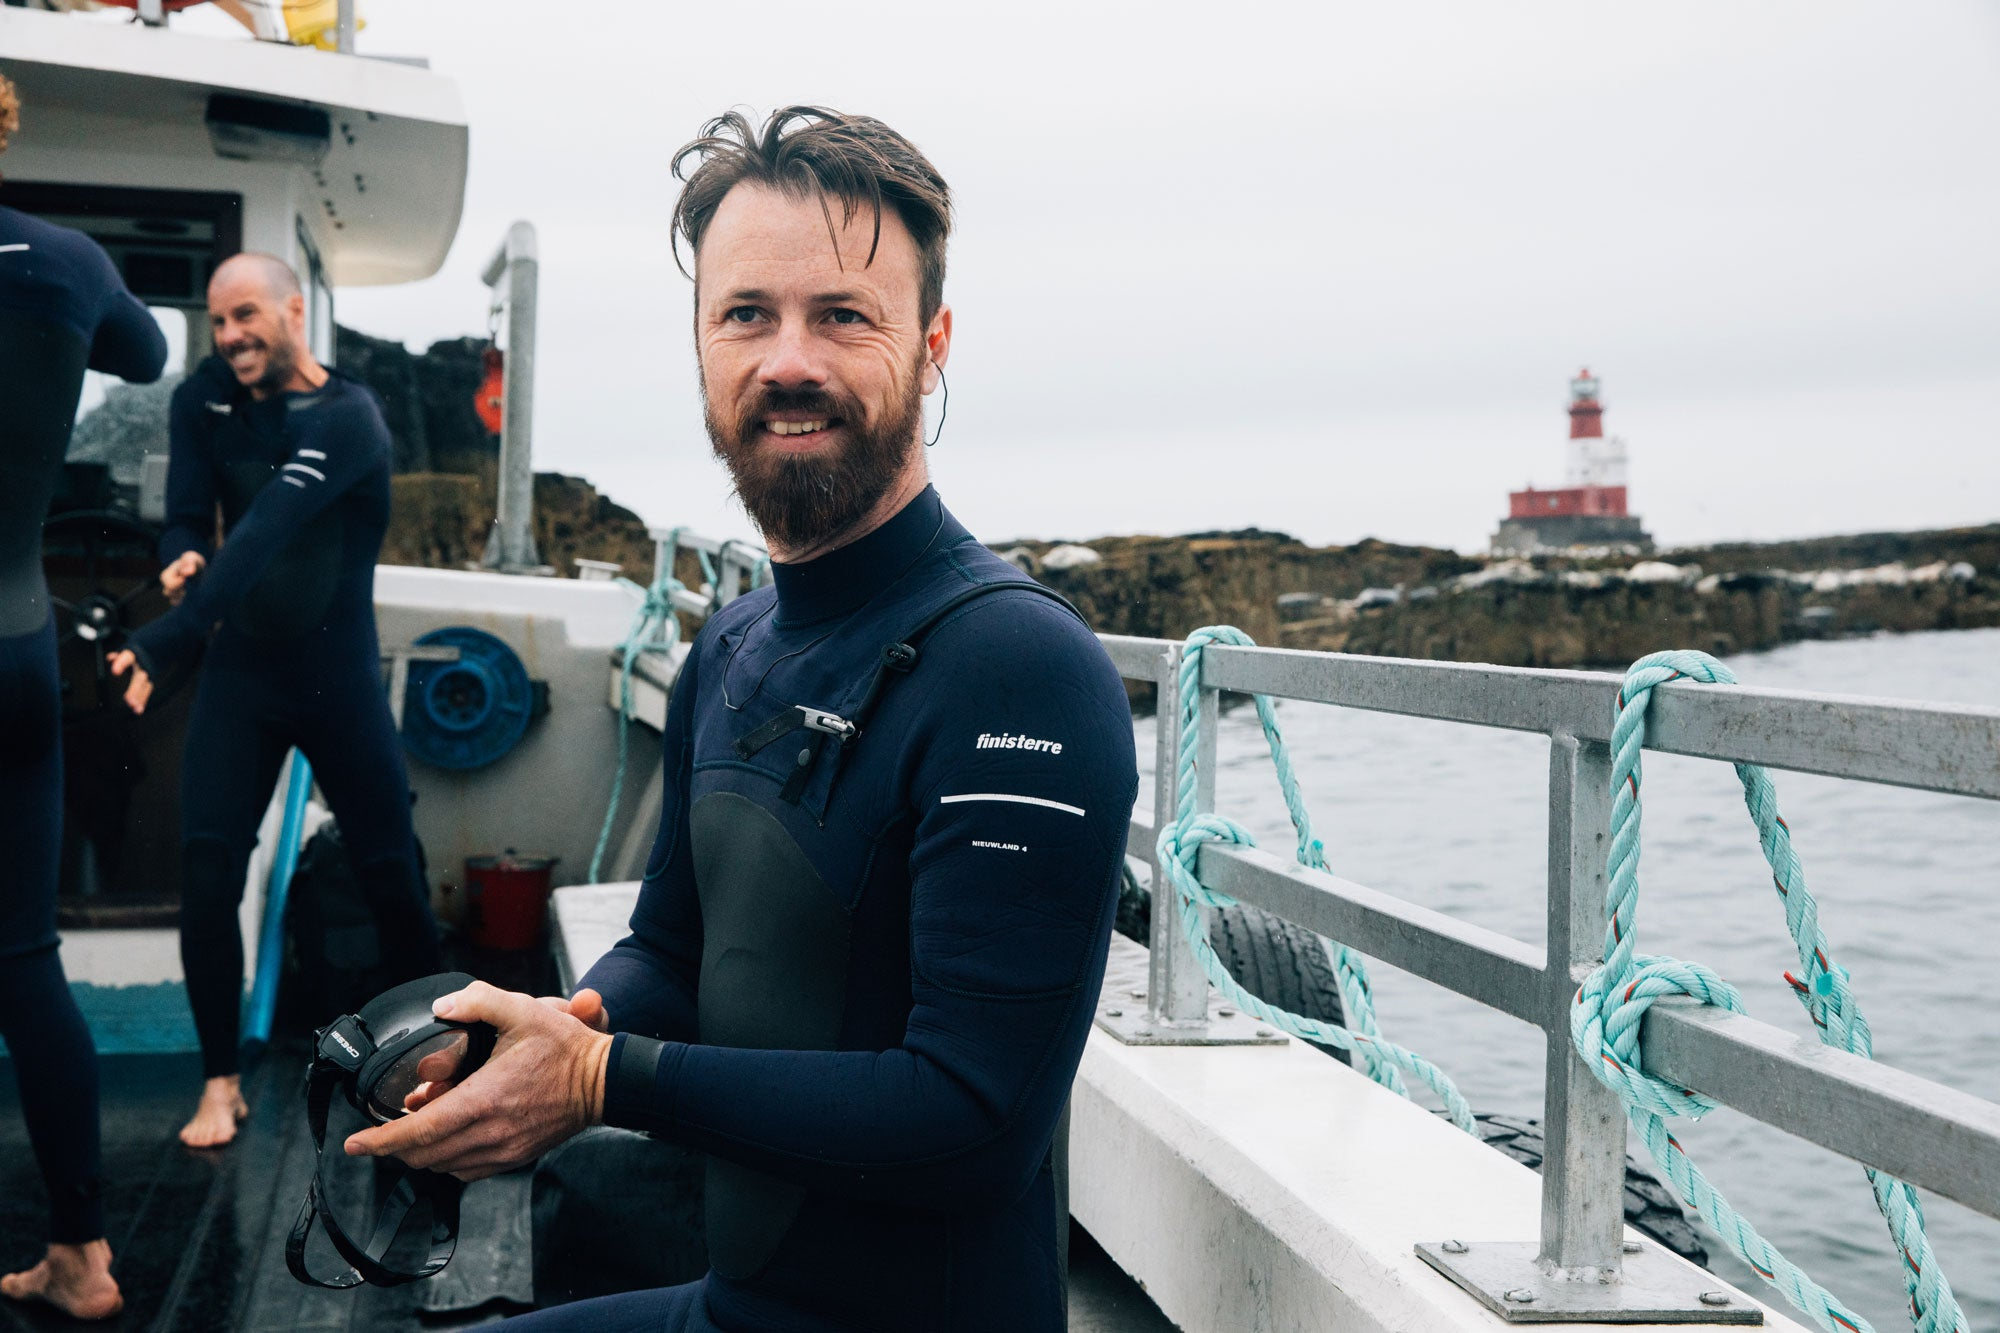 Chris-McClean-changing-into-his-finisterre-wetsuit